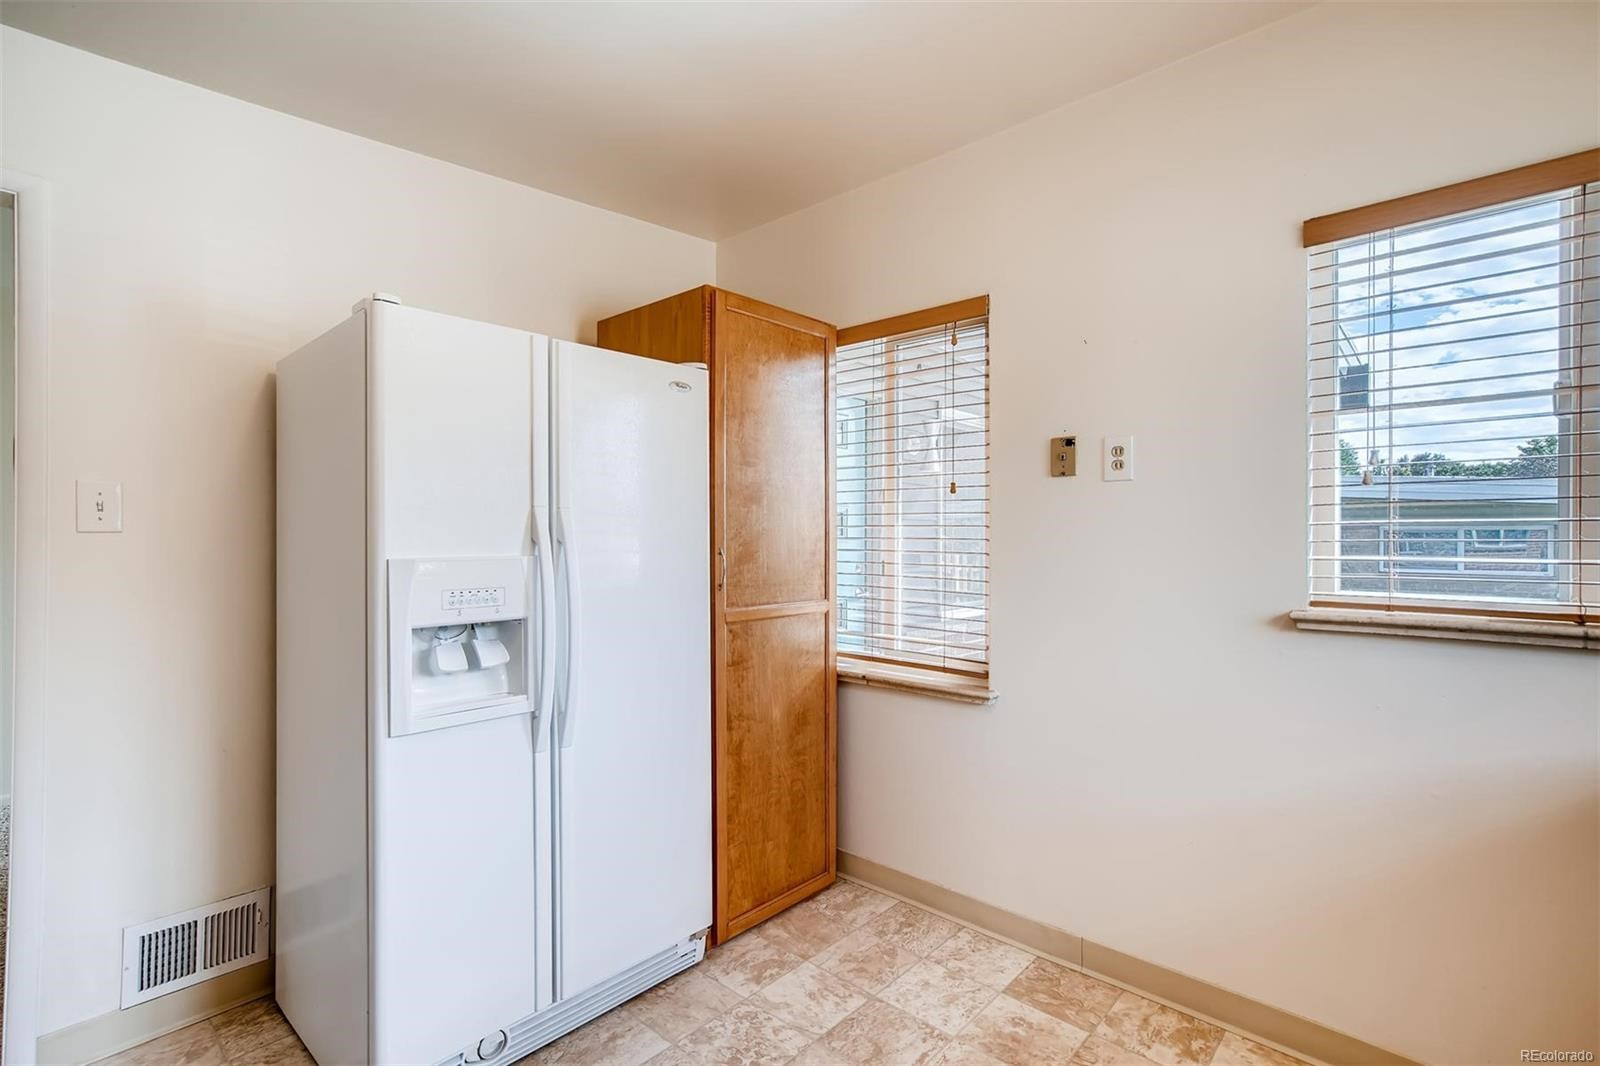 MLS# 4109118 - 11 - 5970 Dudley Court, Arvada, CO 80004